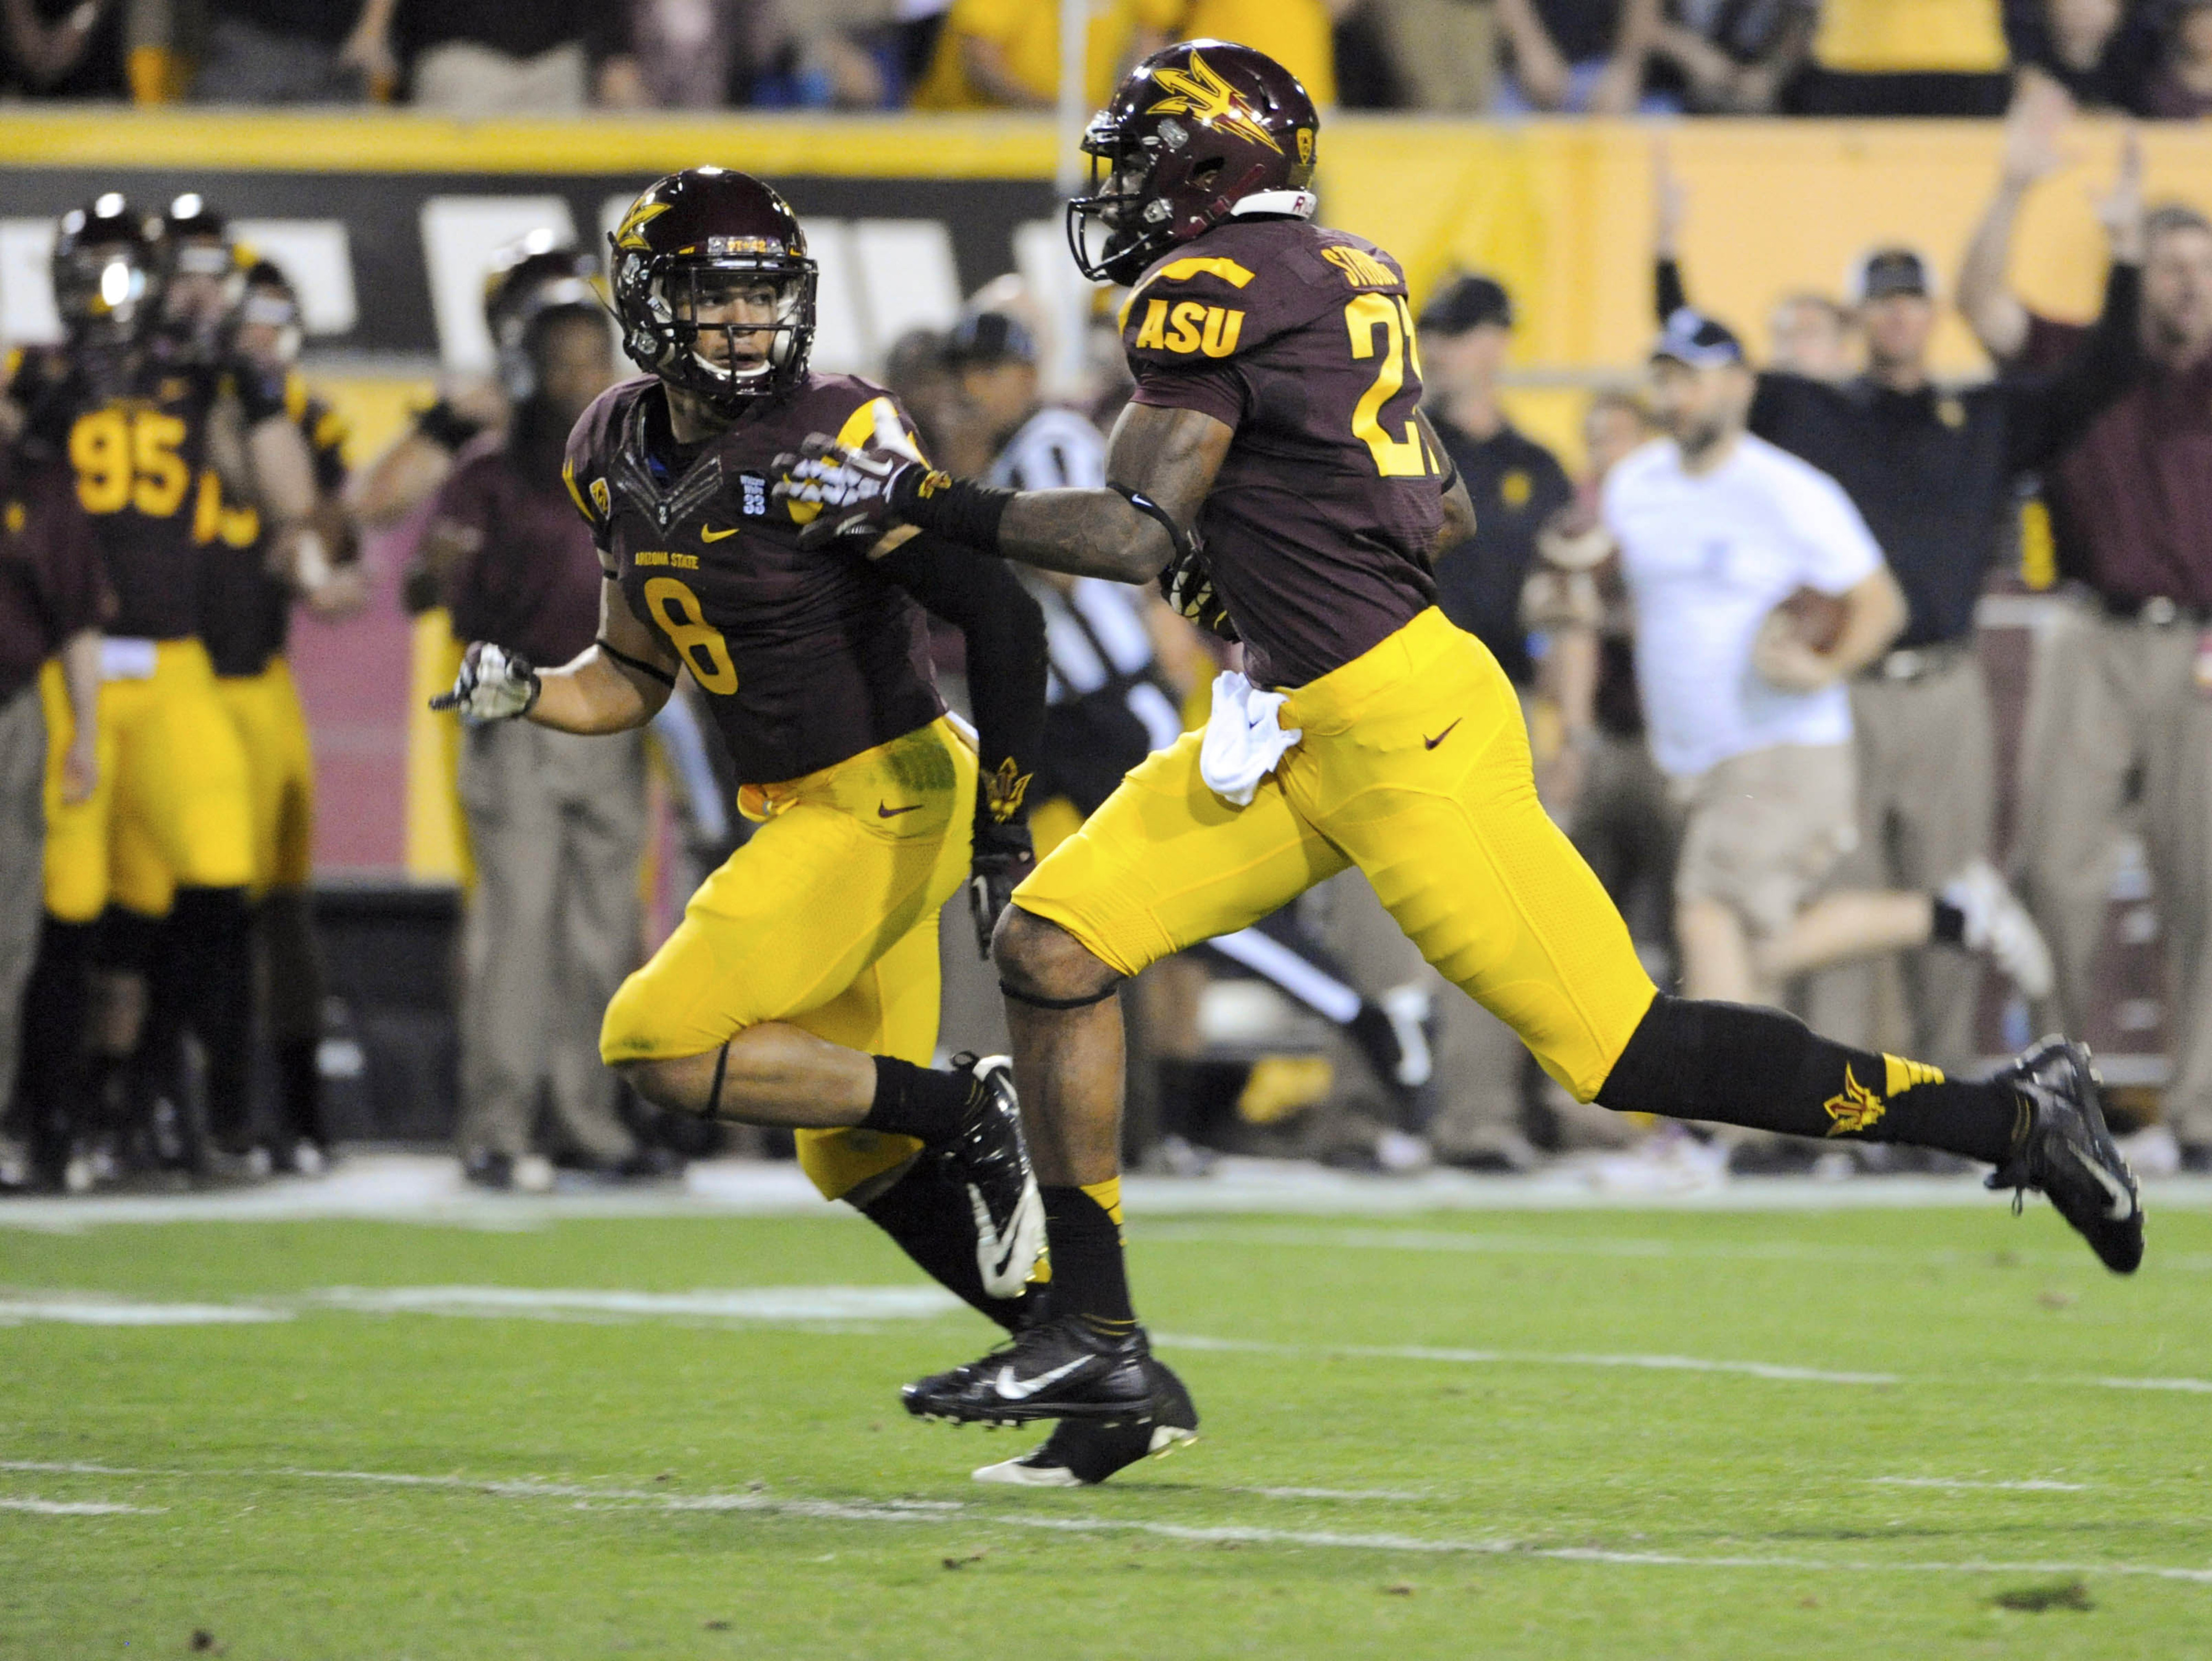 Jaelen Strong with a 69-yard touchdown reception to get the scoring started for Arizona State.